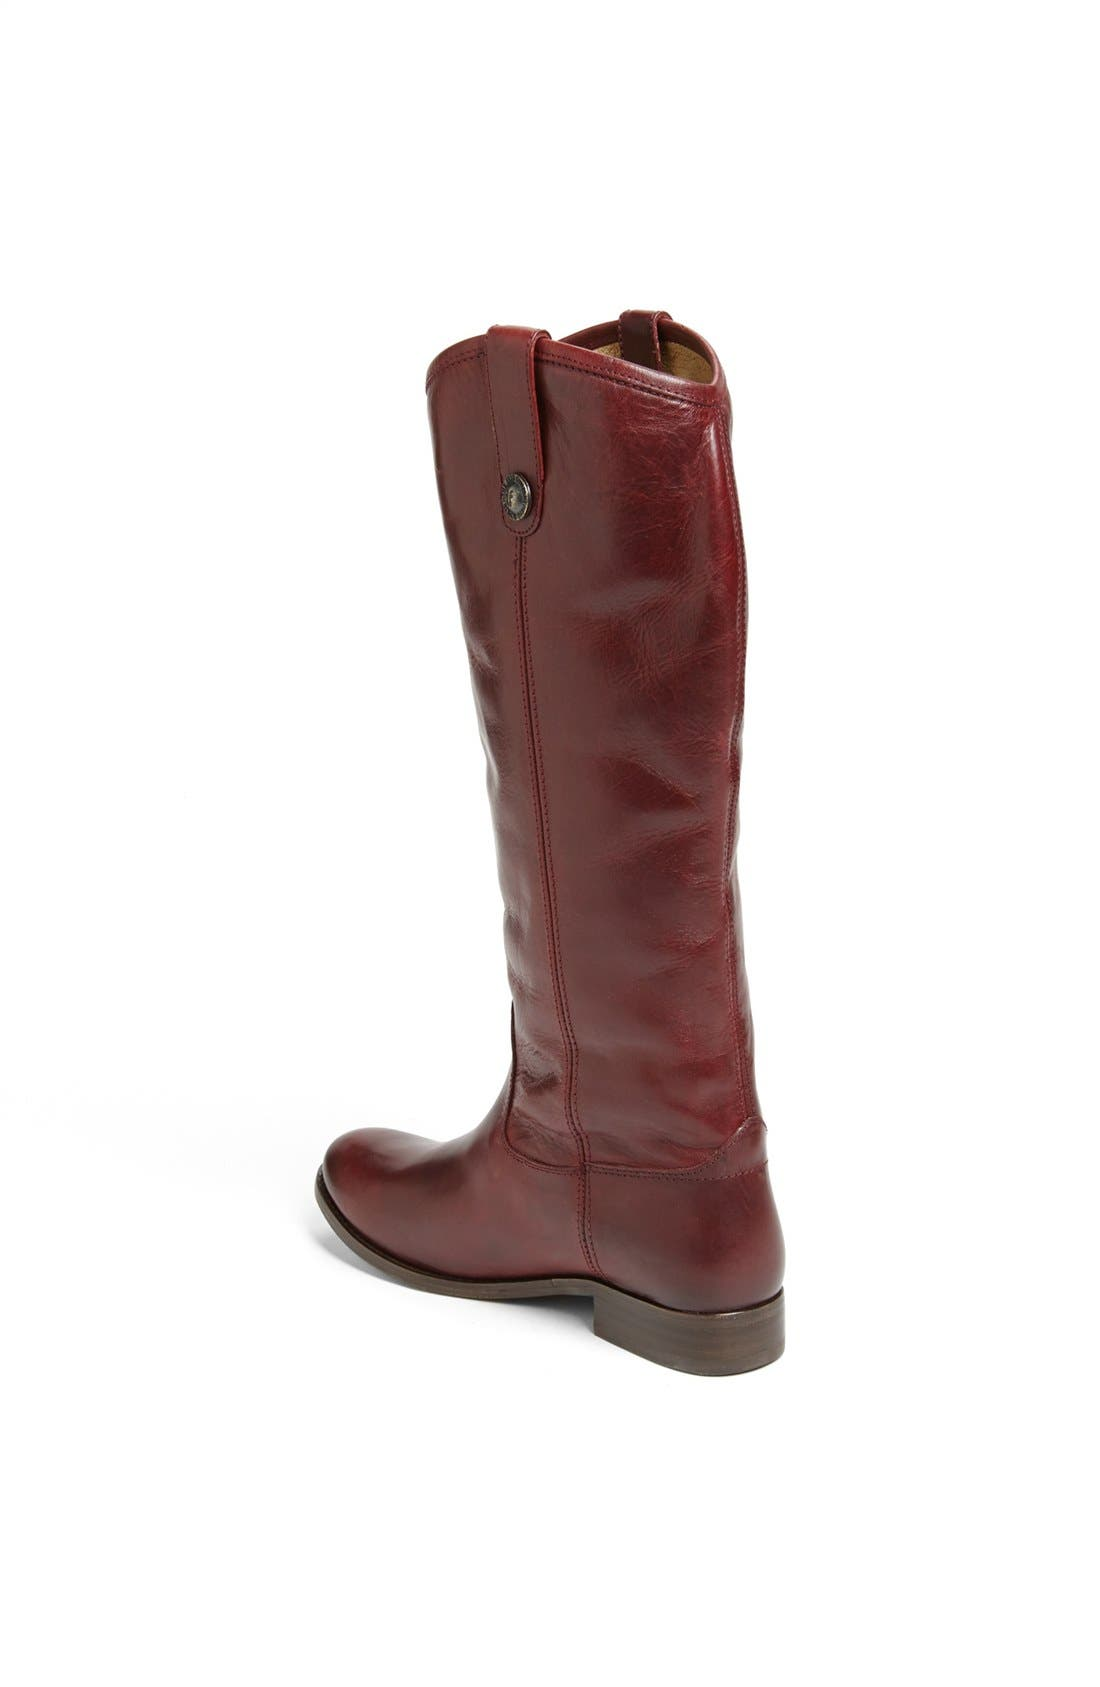 'Melissa Button' Leather Riding Boot,                             Alternate thumbnail 66, color,